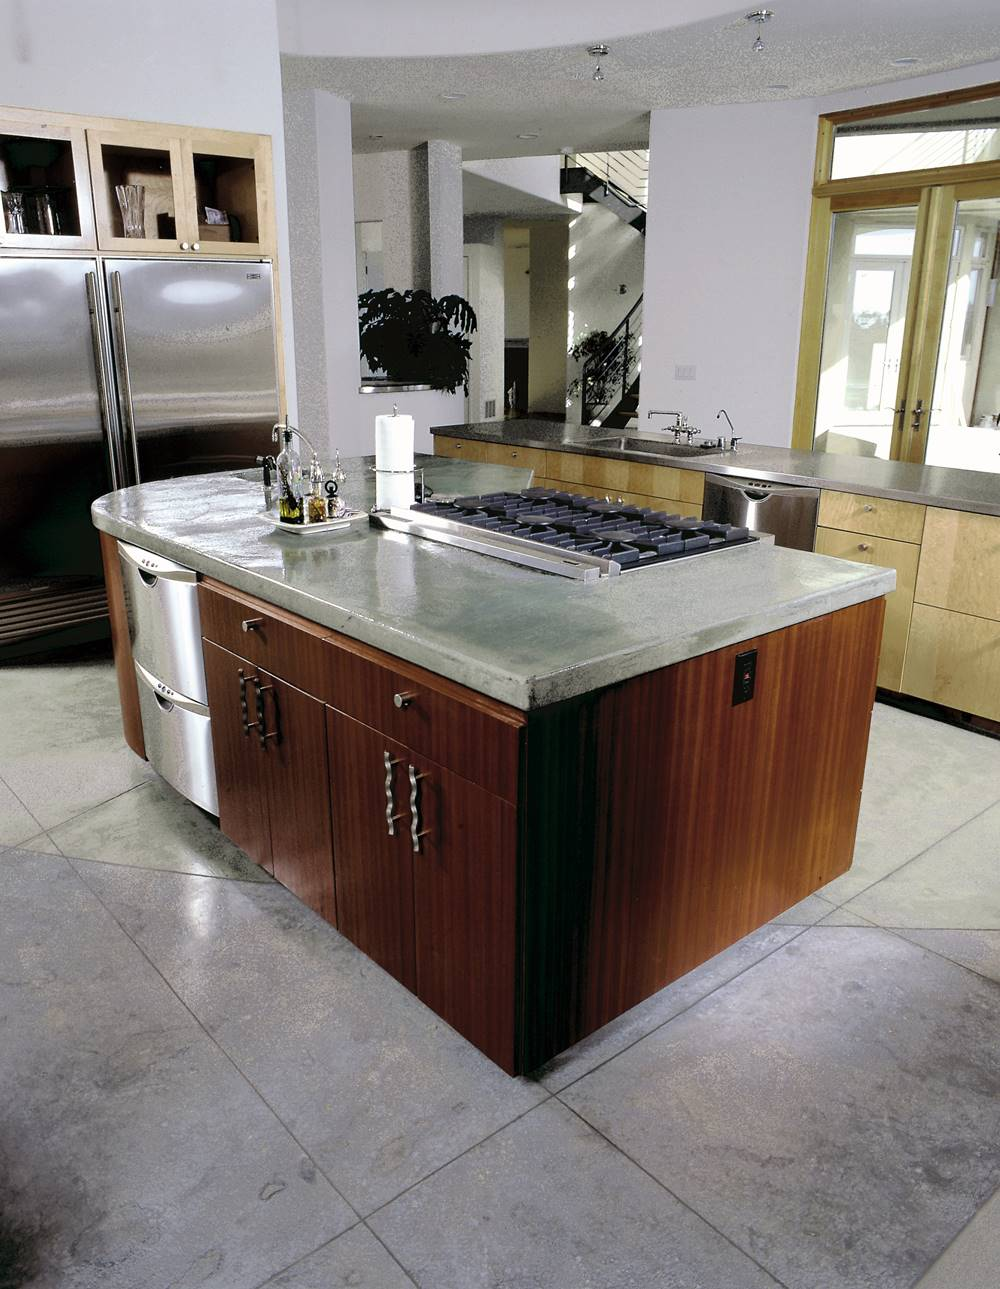 Kitchen island with a concrete countertop